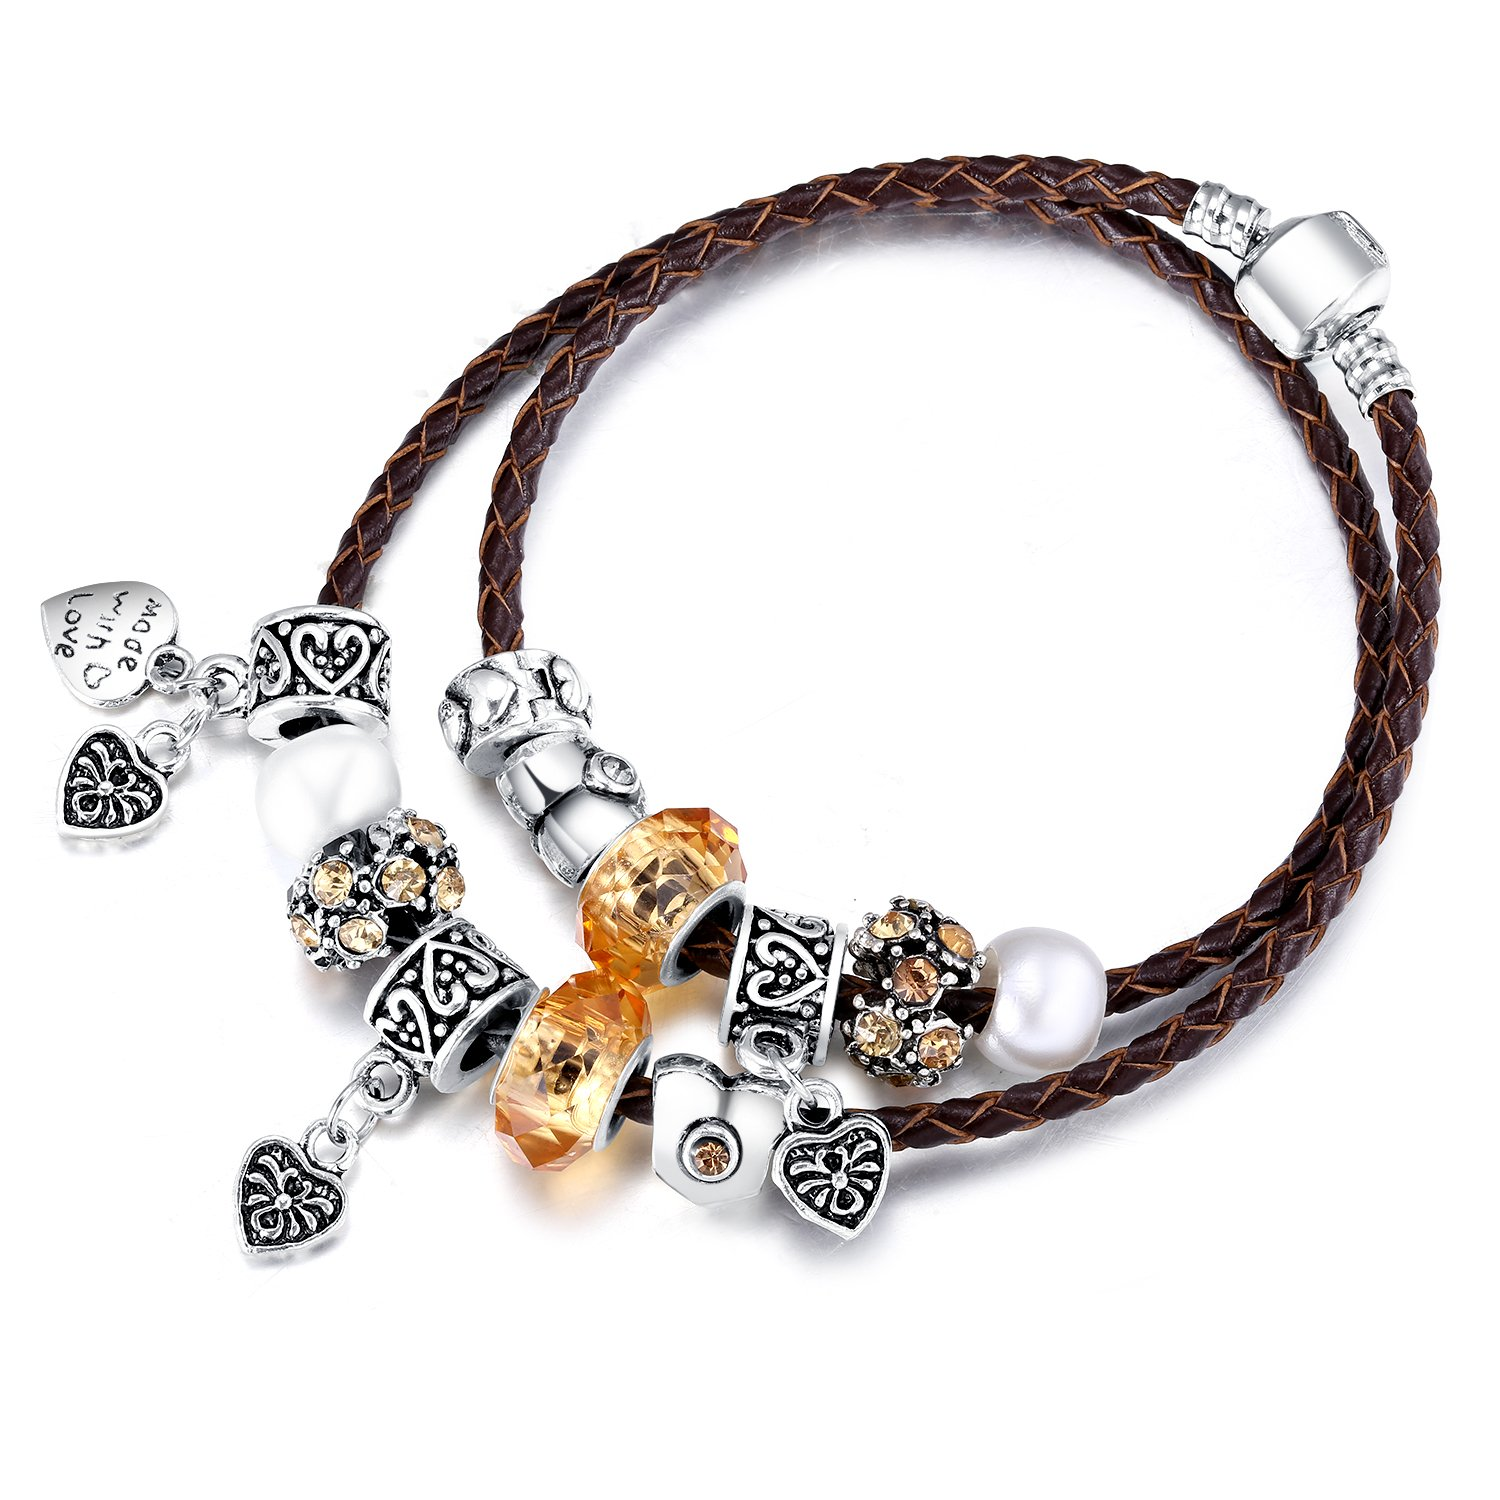 22&Co. FASHION CHOICE Charm Bracelet with Handmade Silver Tone Beads and Genuine Leather Chain